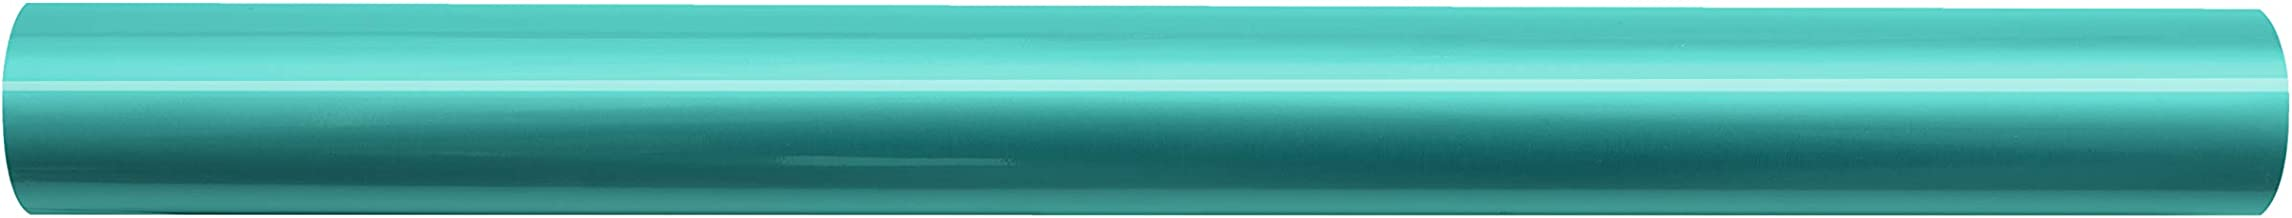 We R Memory Keepers We Quill-12 x96 Roll, New 2019, Foil Crafts, for Electronic Cutting Machines Cricut, Silhouette & Brother, Papercrafts, DIY, Home Décor, Upcycling, Stationery, Aqua, One